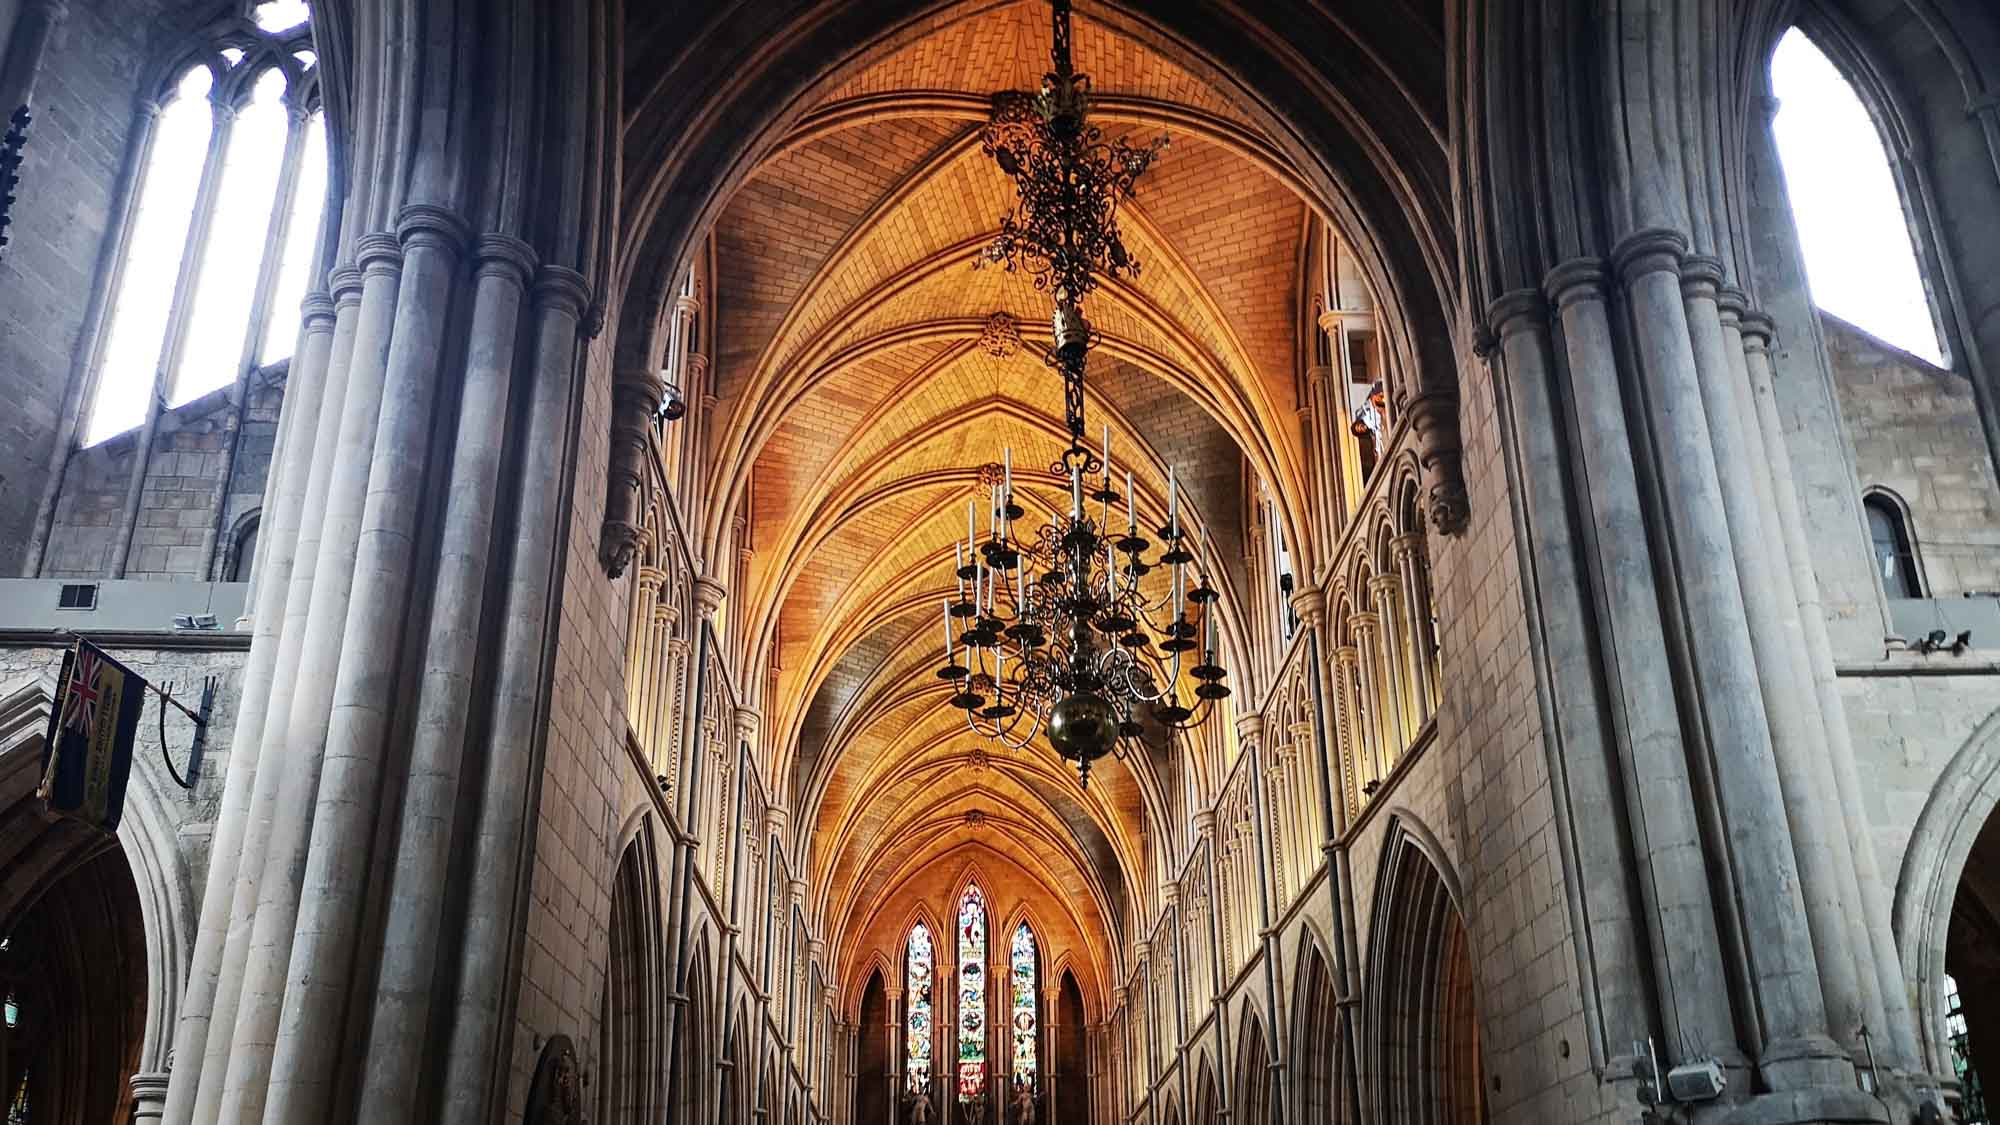 the nave of Southwark Cathedral showing the vaulted ceiling